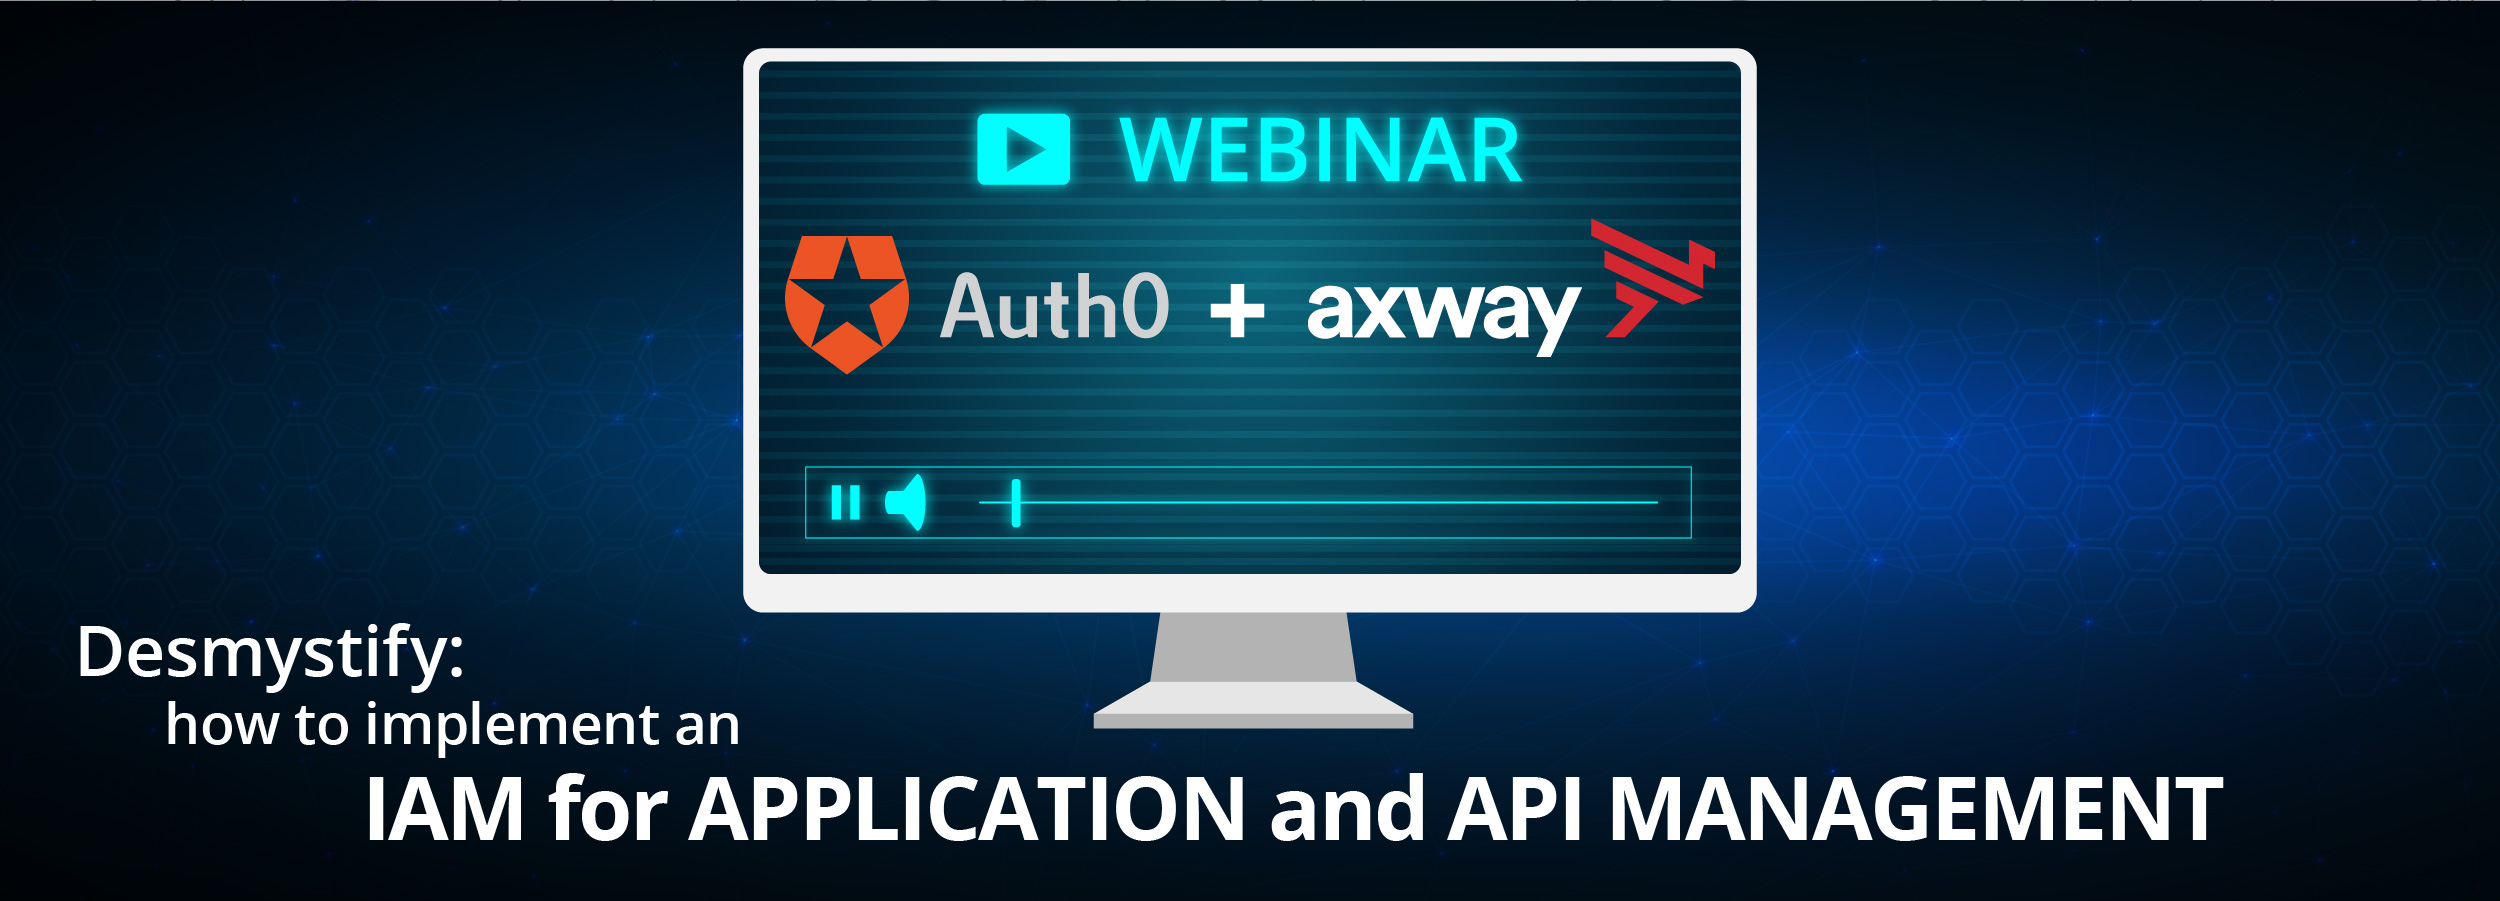 Webinar: how to implement an IAM for Application and API Management